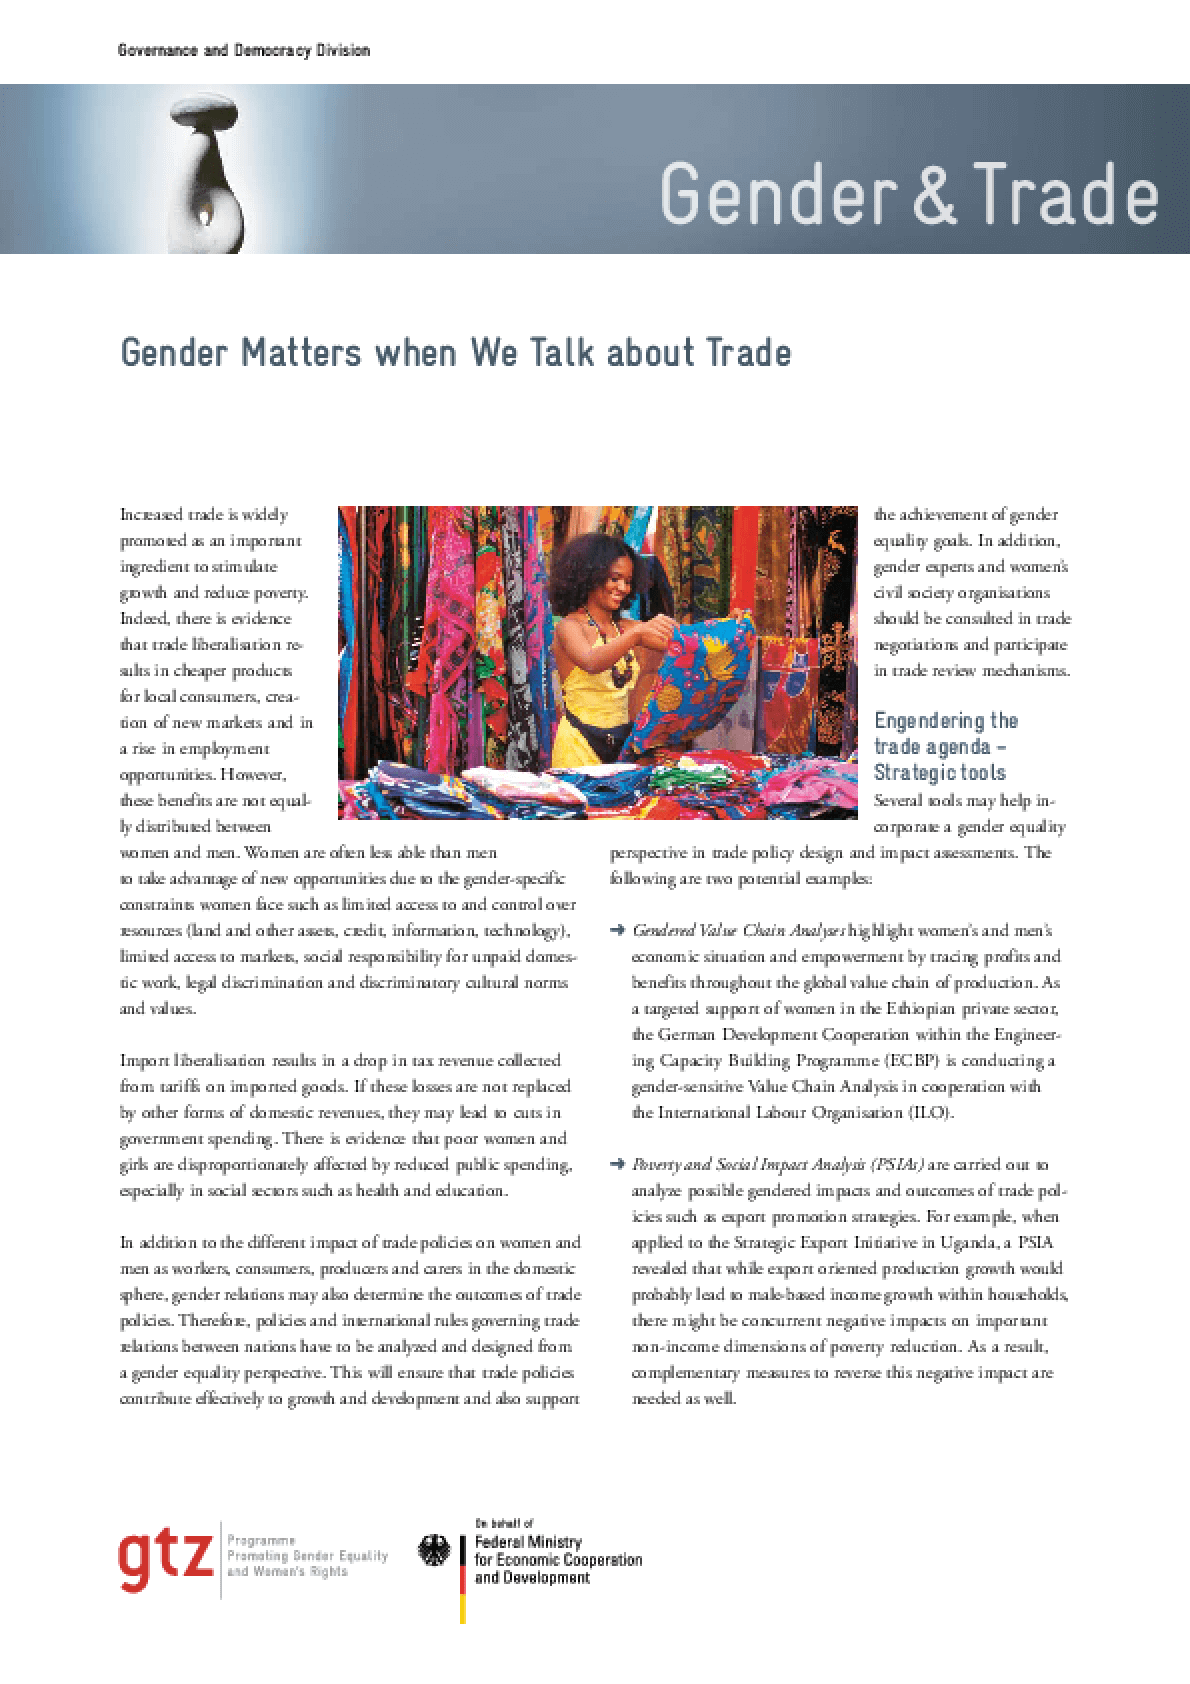 Gender Matters When We Talk about Trade